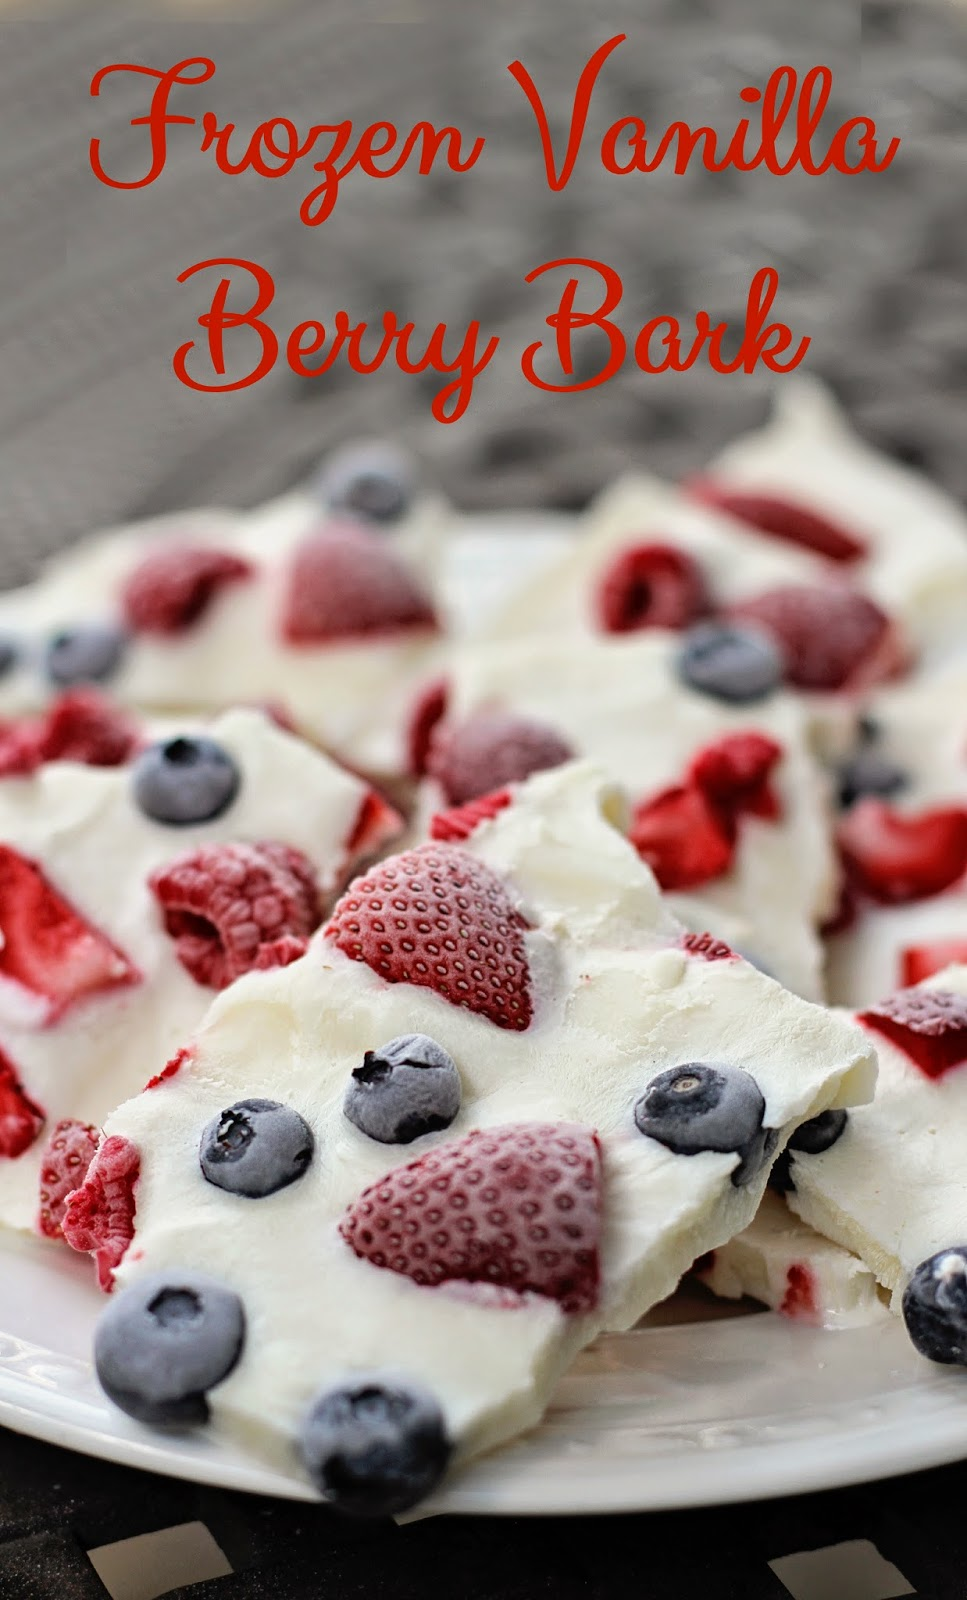 Frozen Yogurt Vanilla Berry Bark